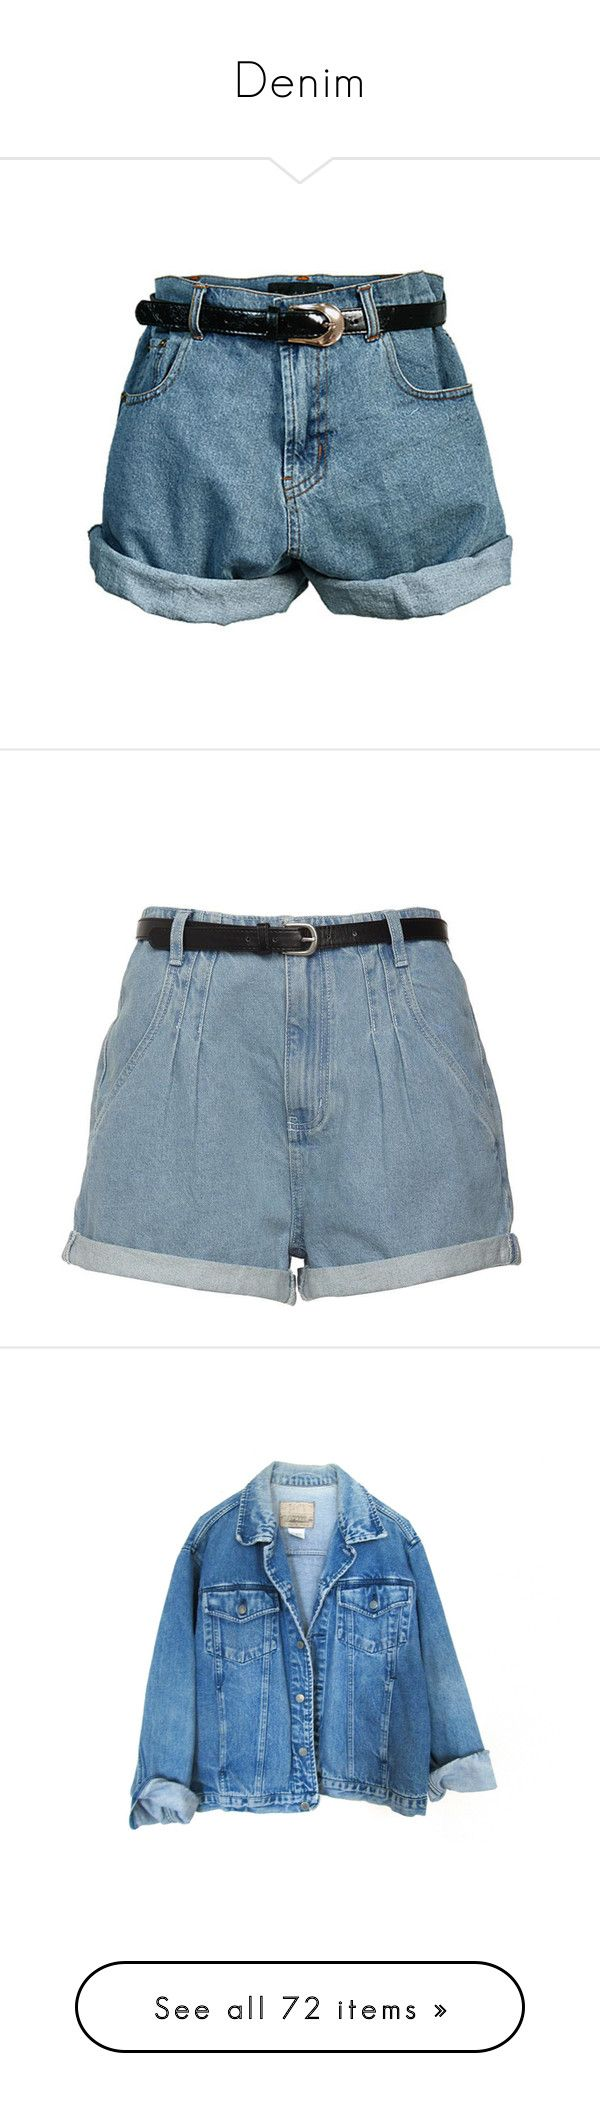 """Denim"" by marandfear ❤ liked on Polyvore featuring shorts, bottoms, pants, short, loose jean shorts, loose high waisted shorts, high-waisted shorts, boyfriend shorts, high rise shorts и short shorts"